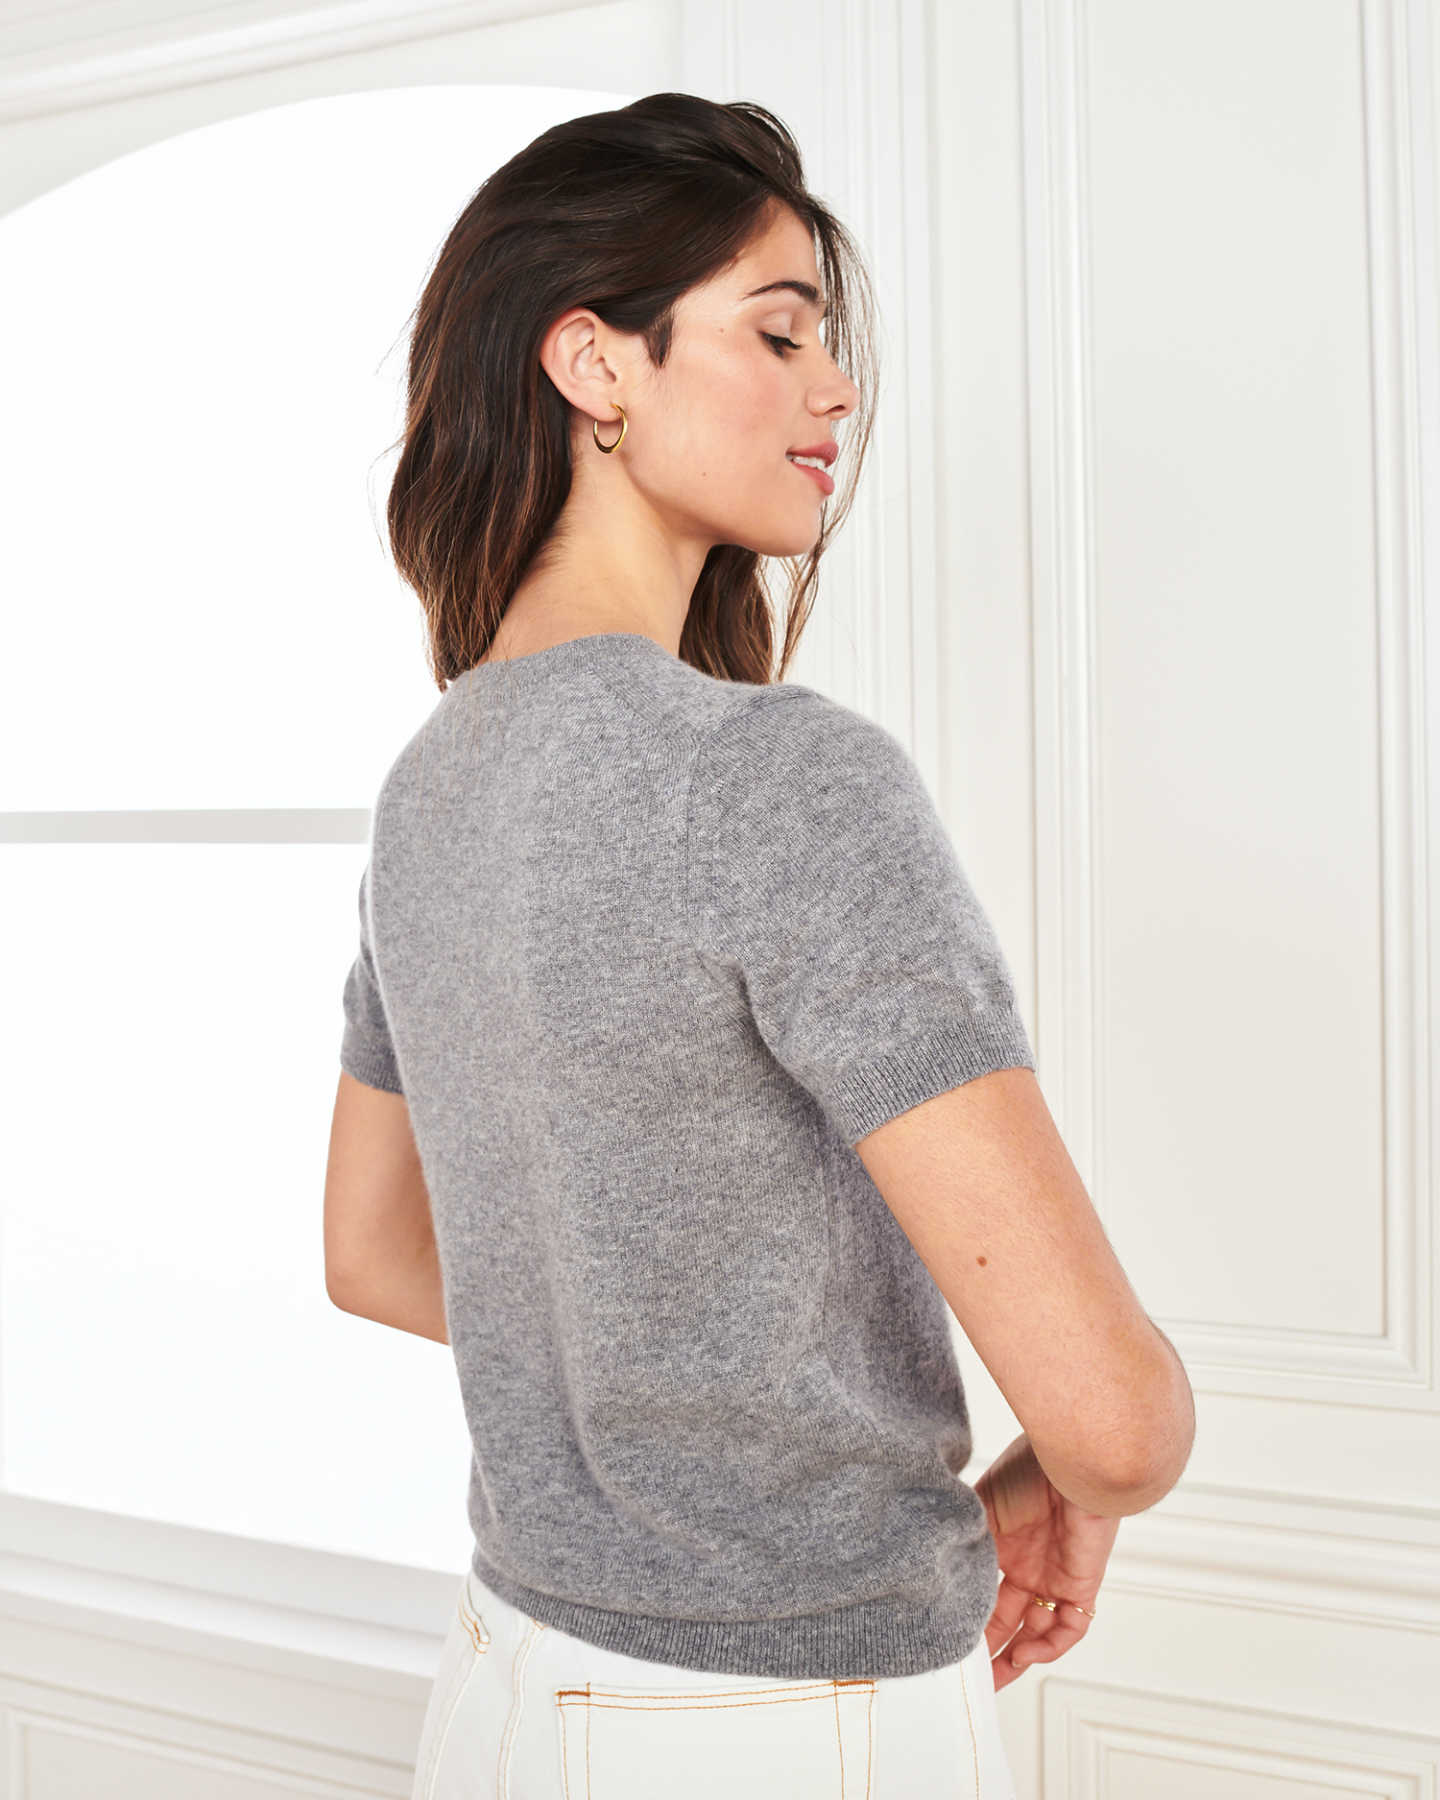 woman wearing grey cashmere tee and short sleeve cashmere sweater from side